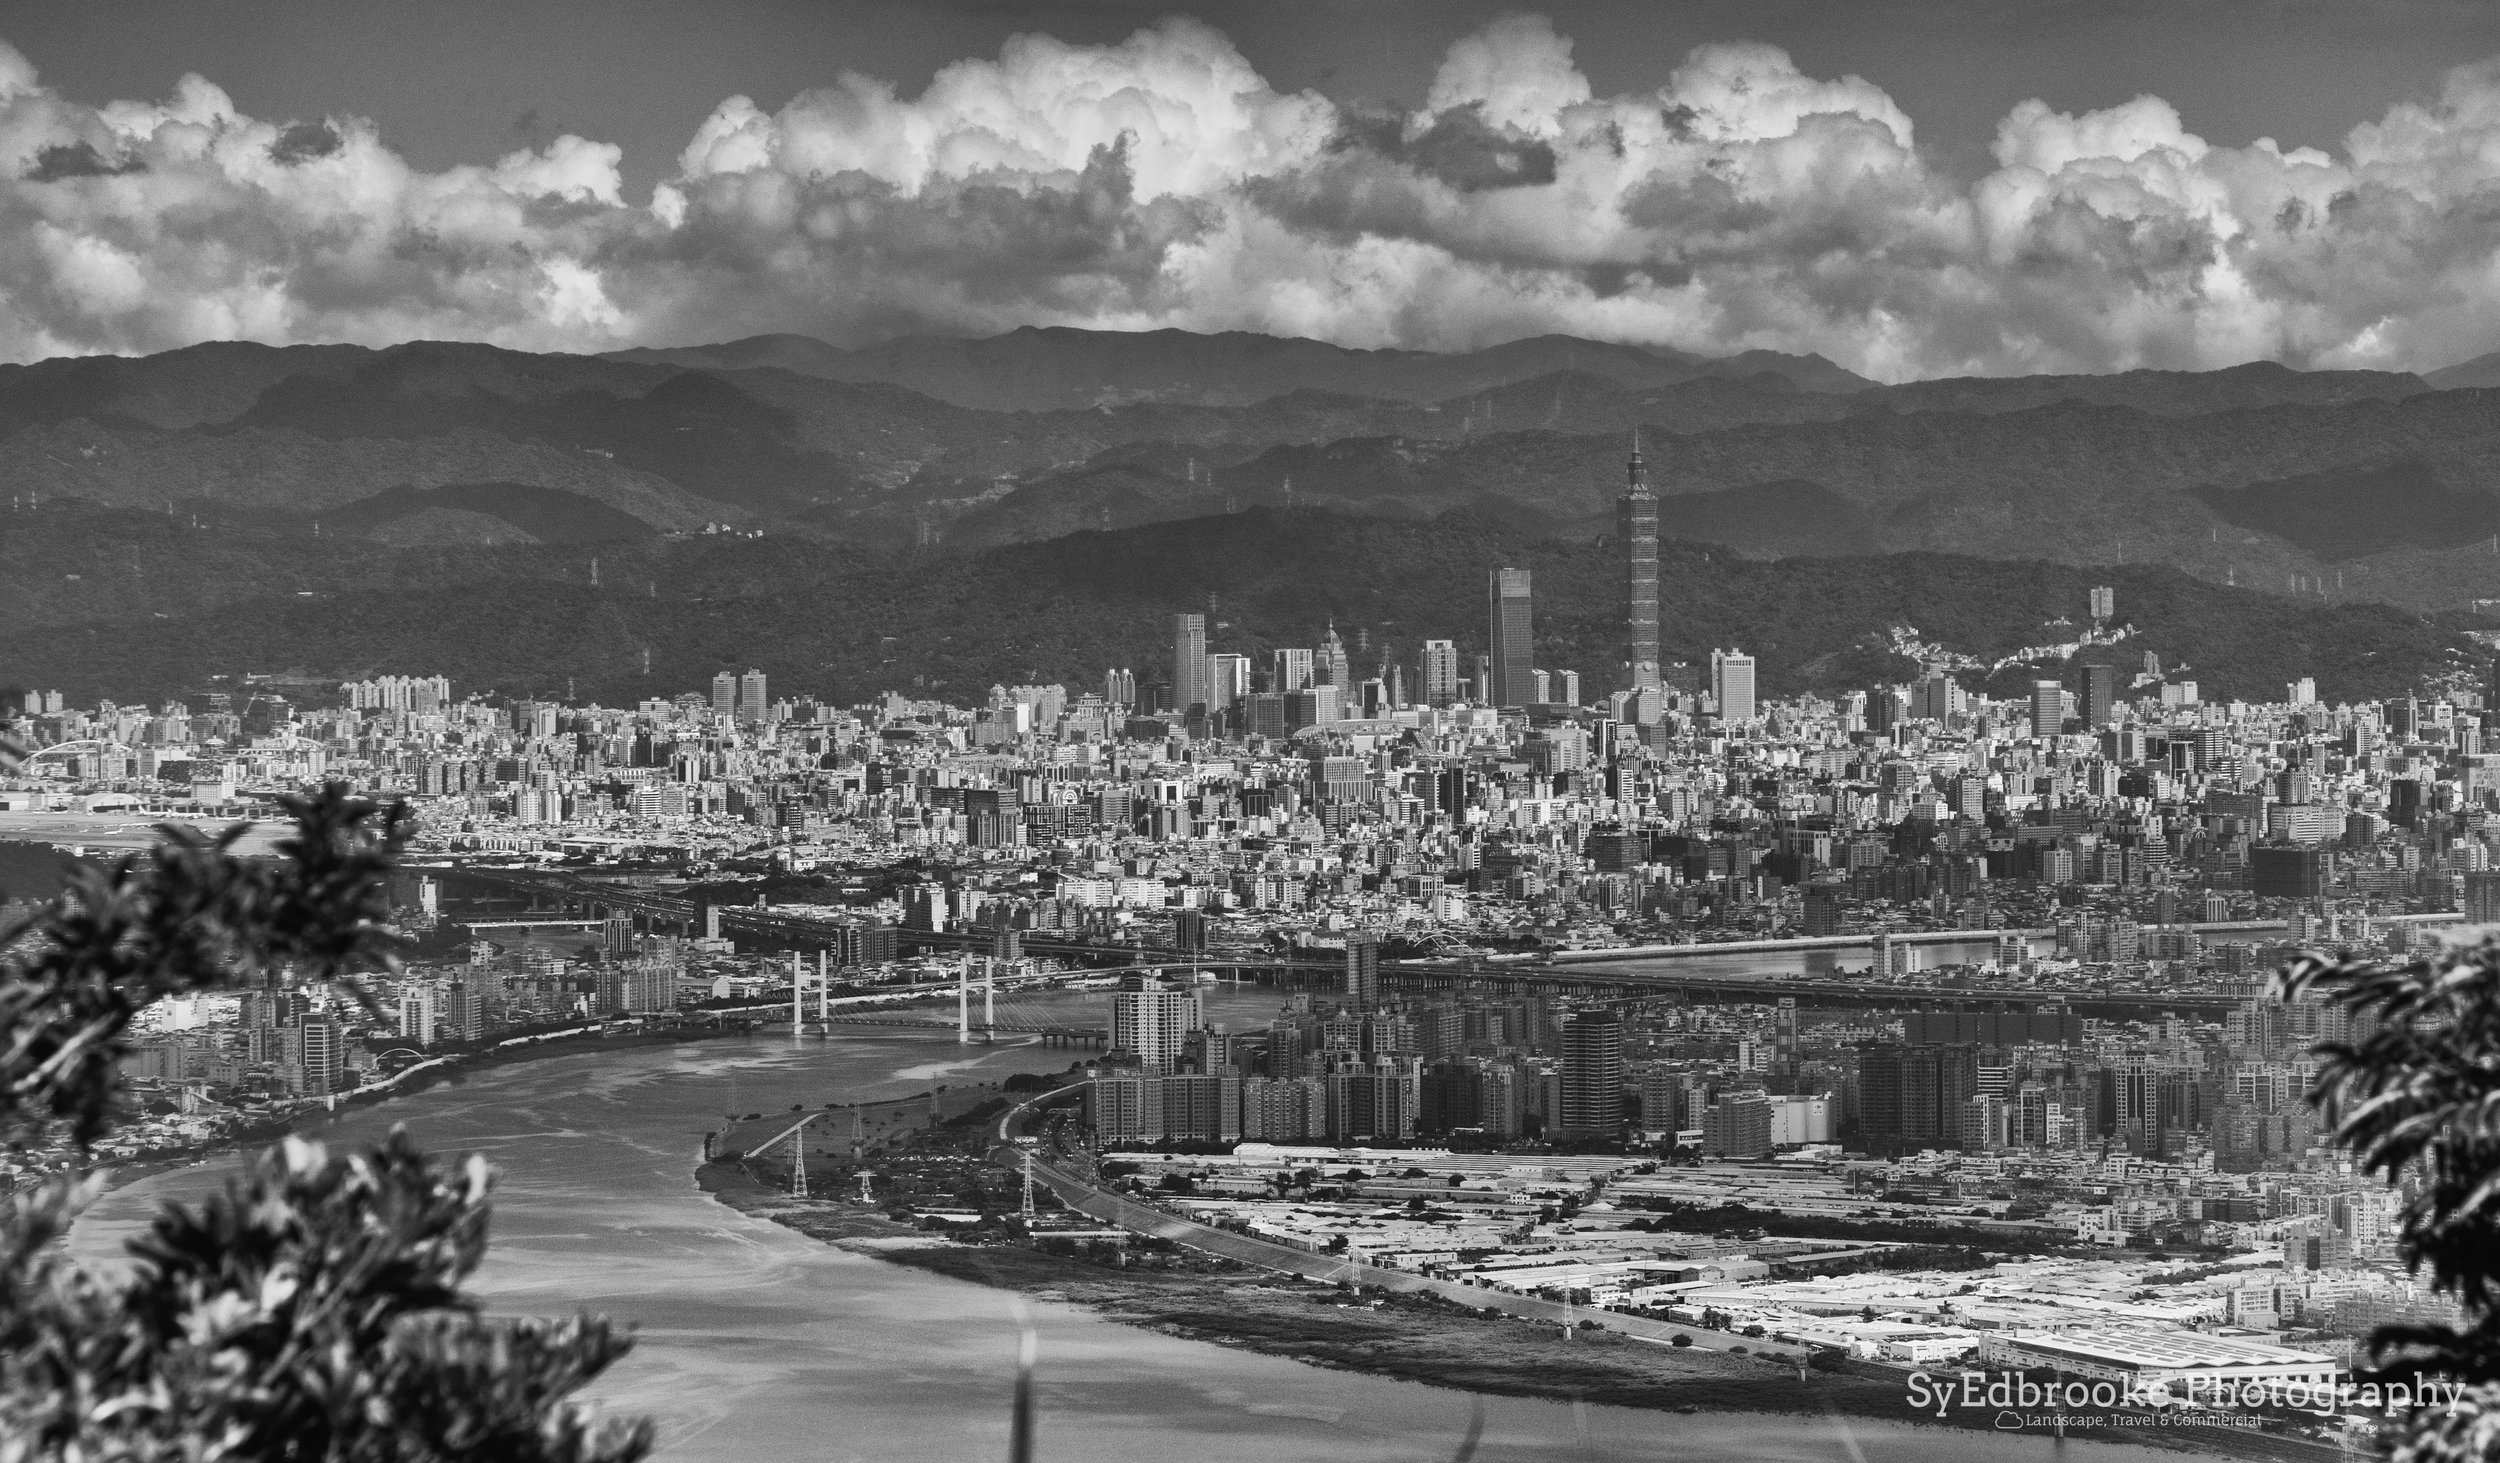 A view of downtown Taipei and 101. f6.3, ISO 200, 1/500, 150mm